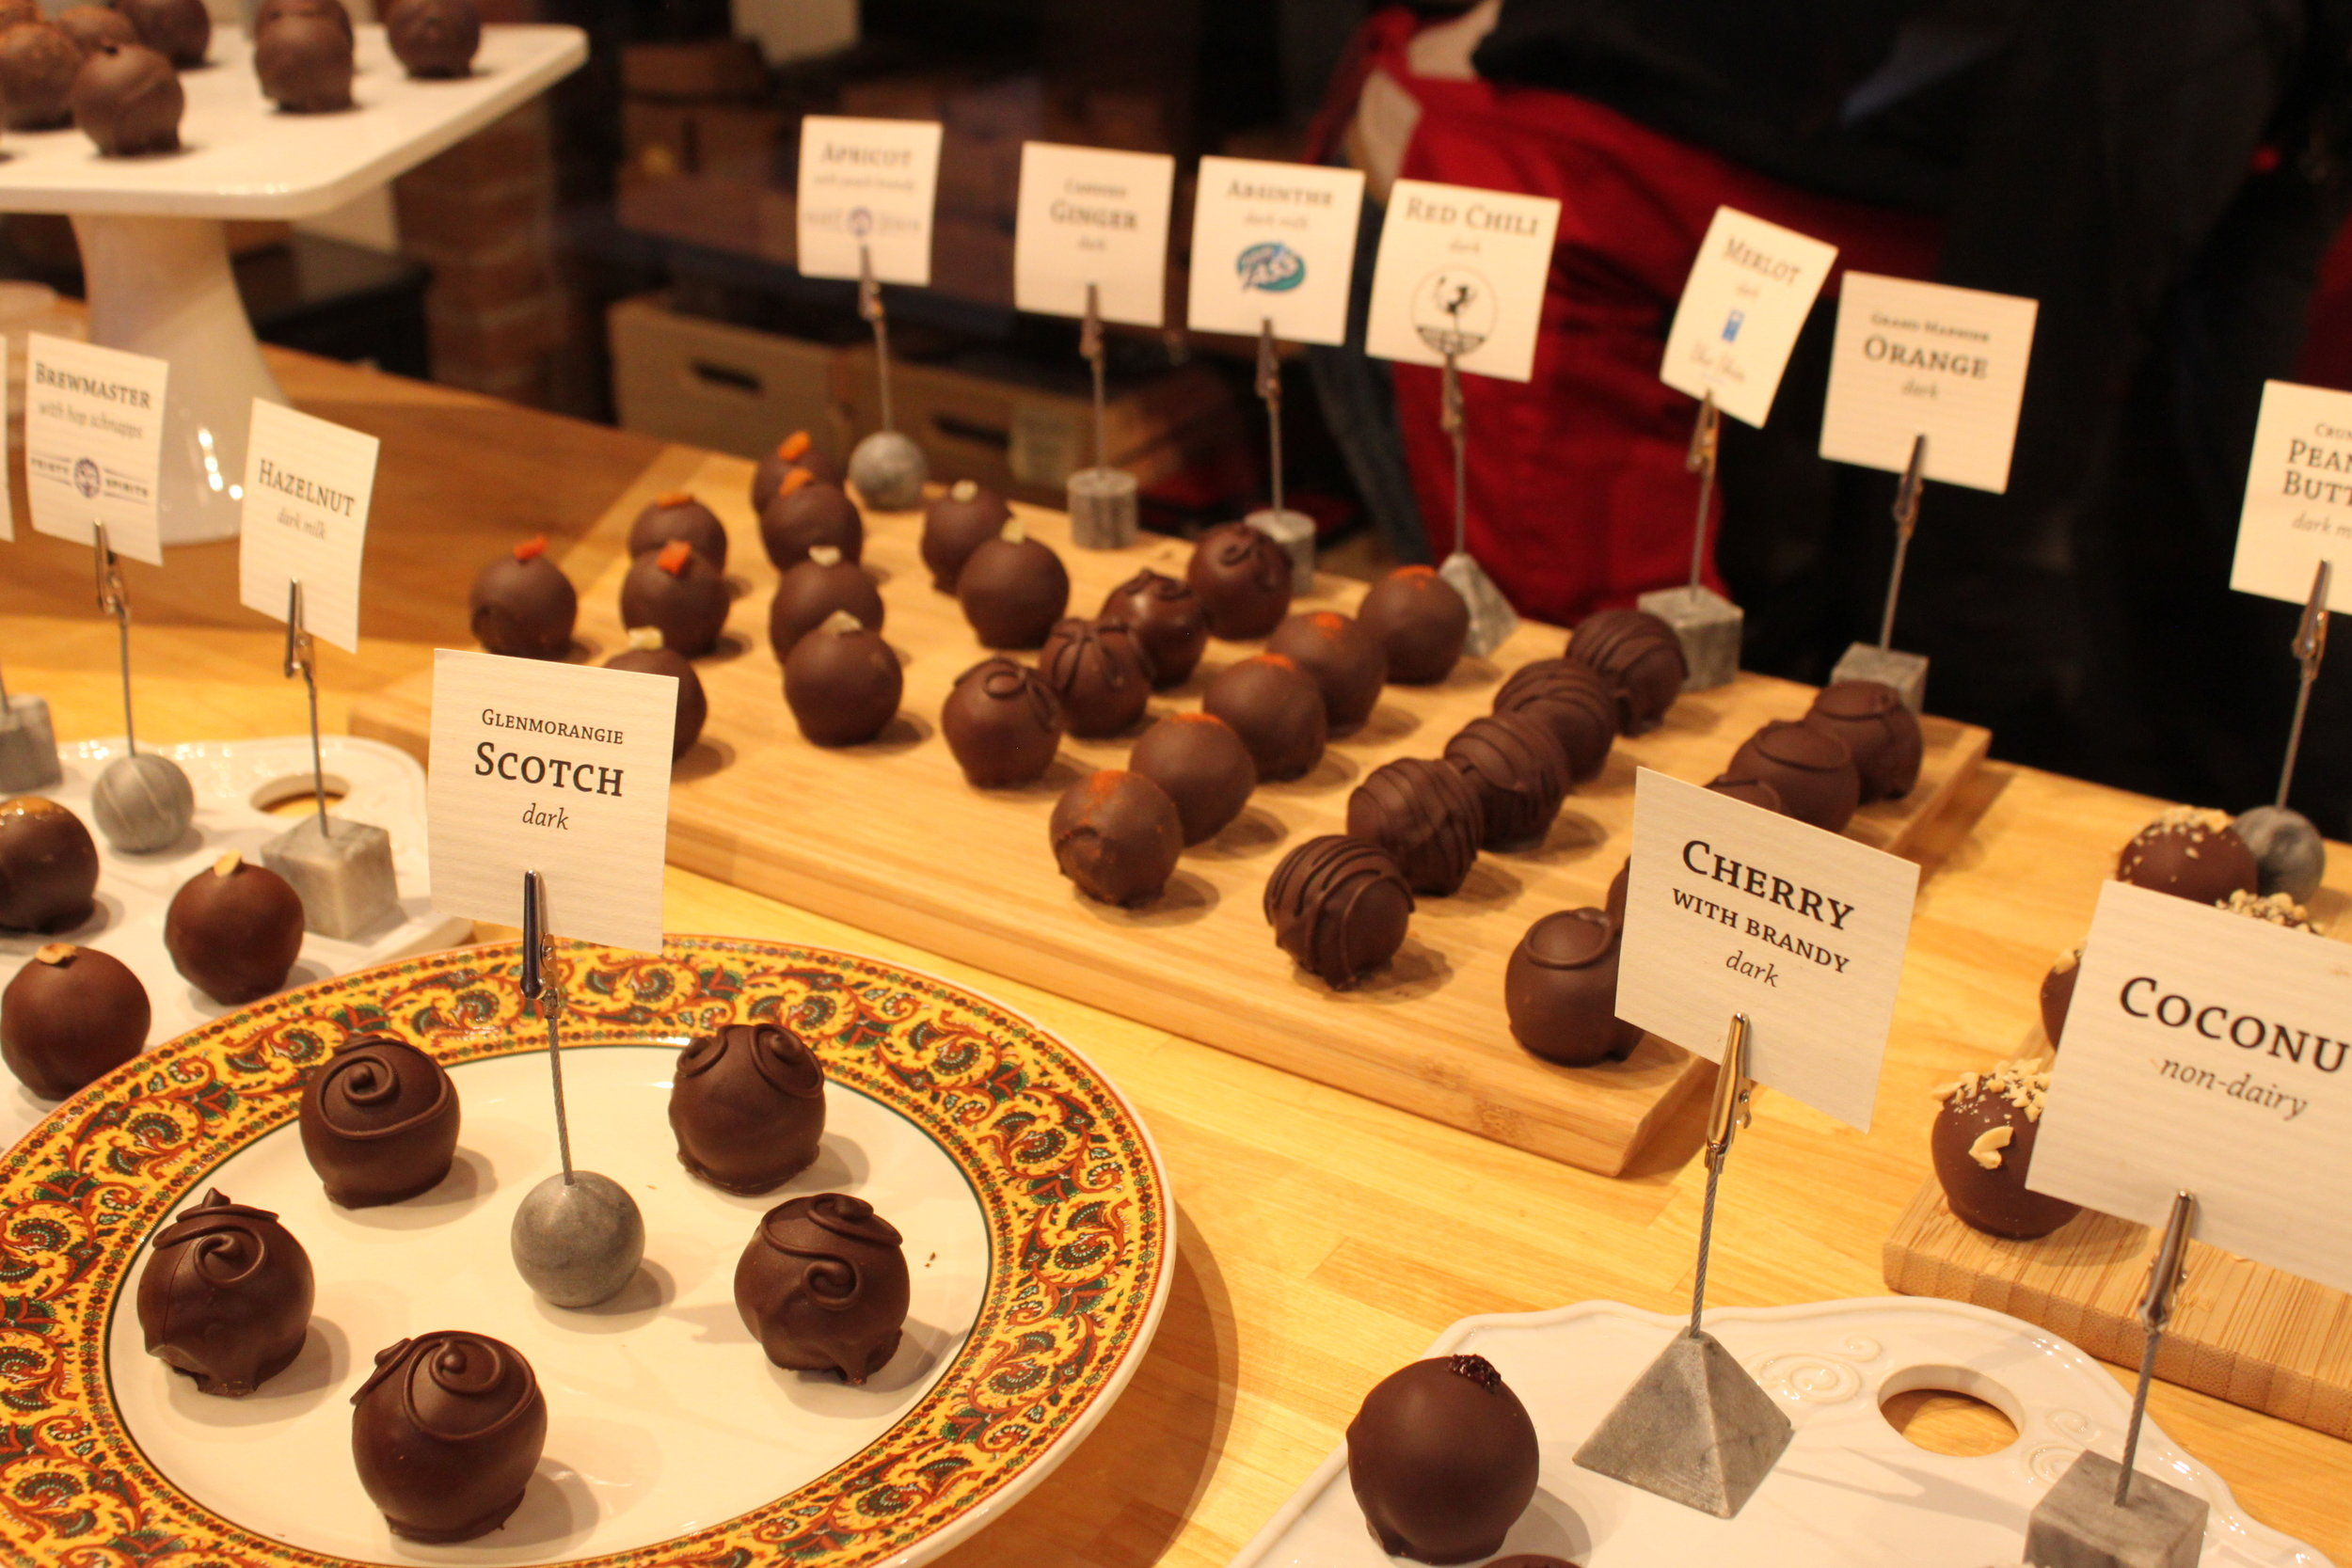 A selection of Nuance Chocolate's truffles. Photo by Rachael Worthington